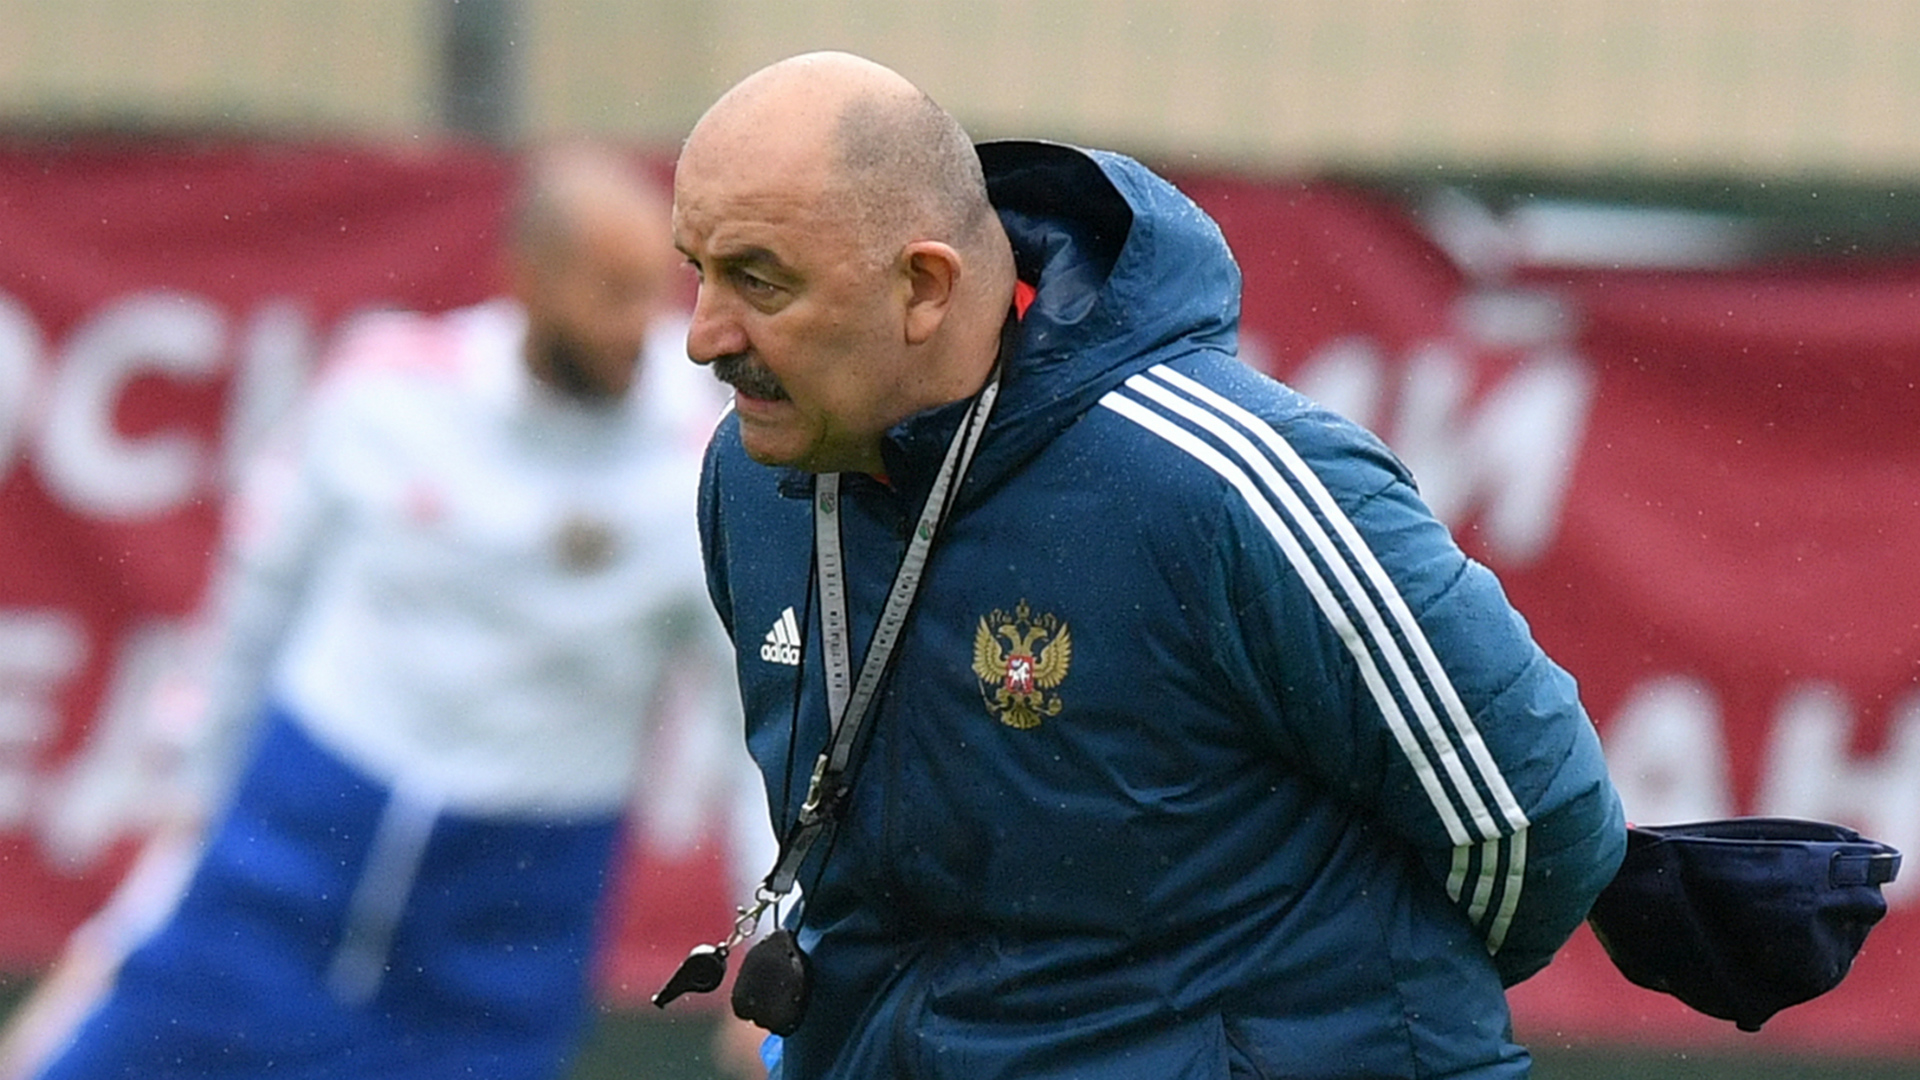 Russian Federation manager Stanislav Cherchesov